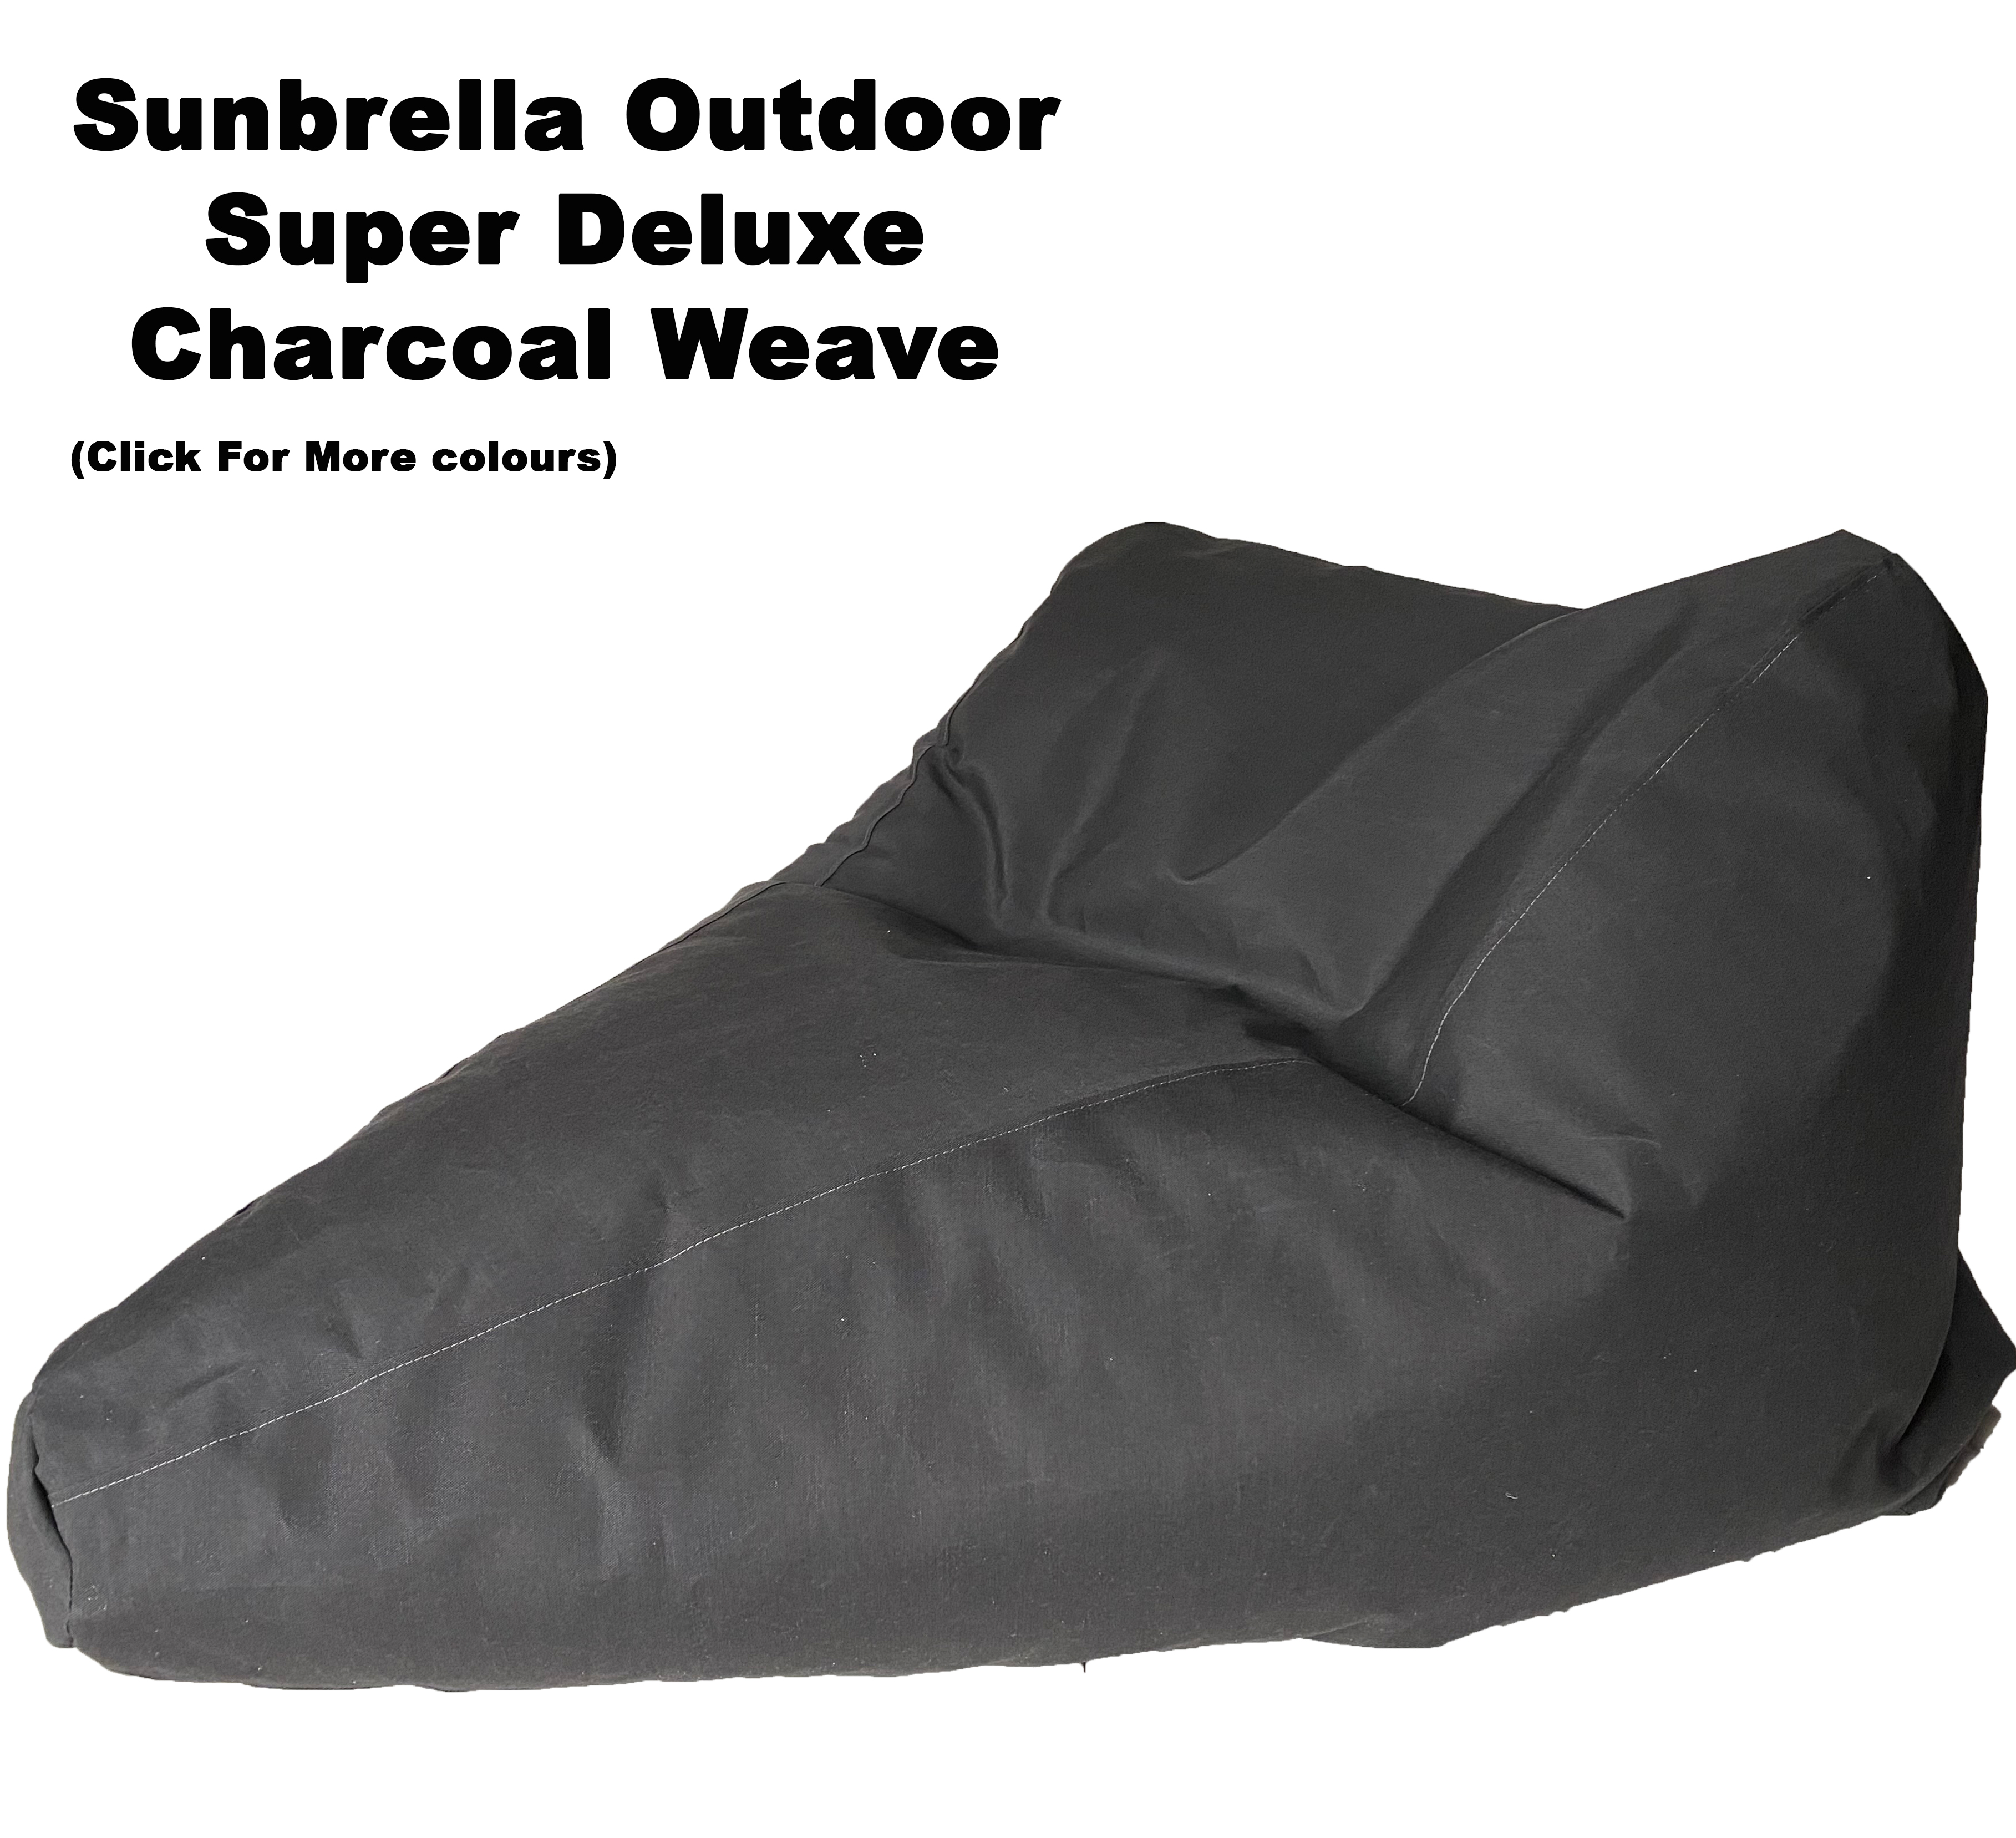 Sunbrella Outdoor Charcoal Weave Super Deluxe Size Bean Bag In Assorted Colours.